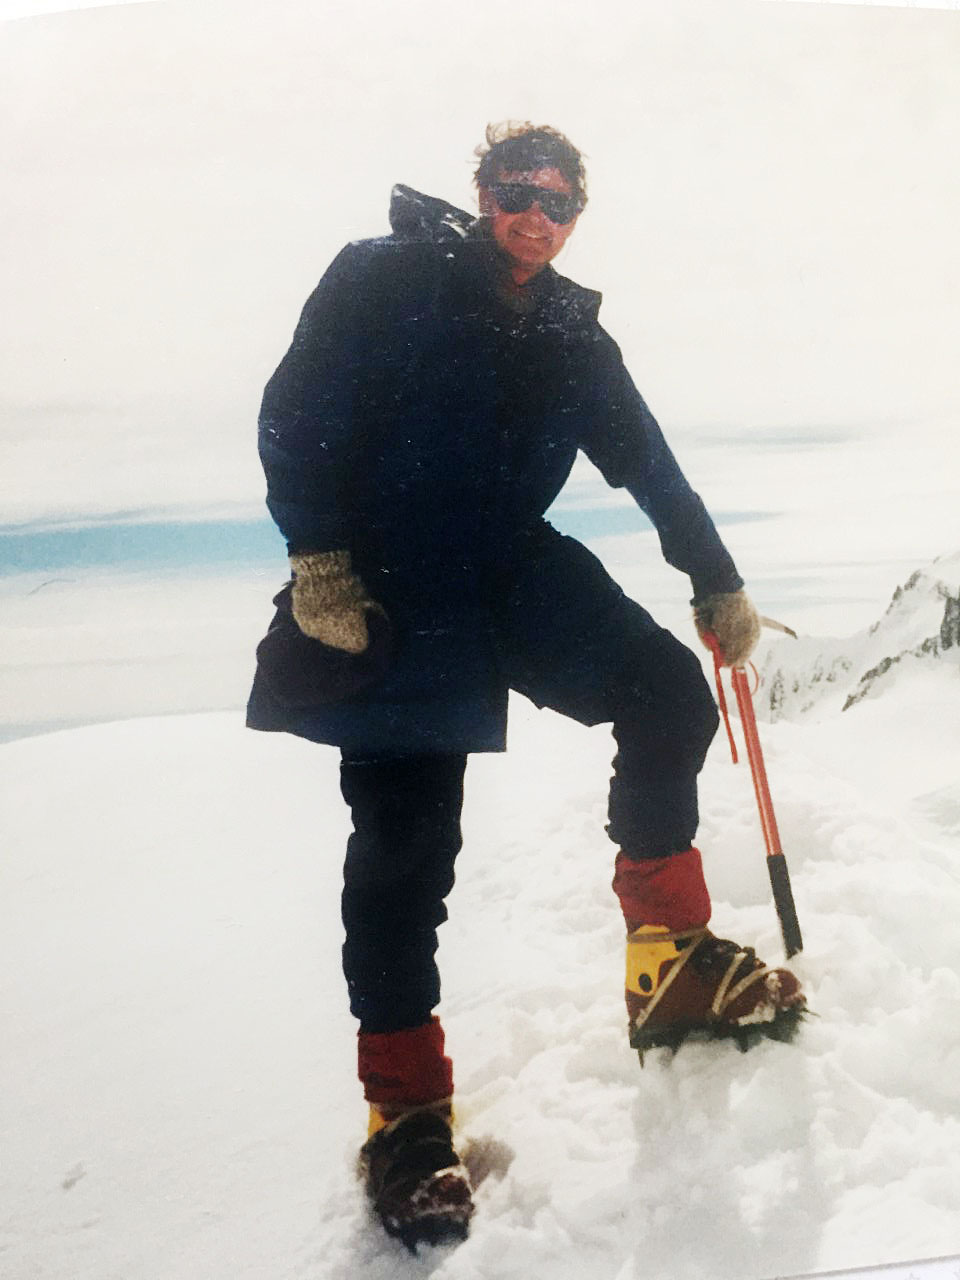 John Veale on Mt Sefton in 1984. Photo: Supplied